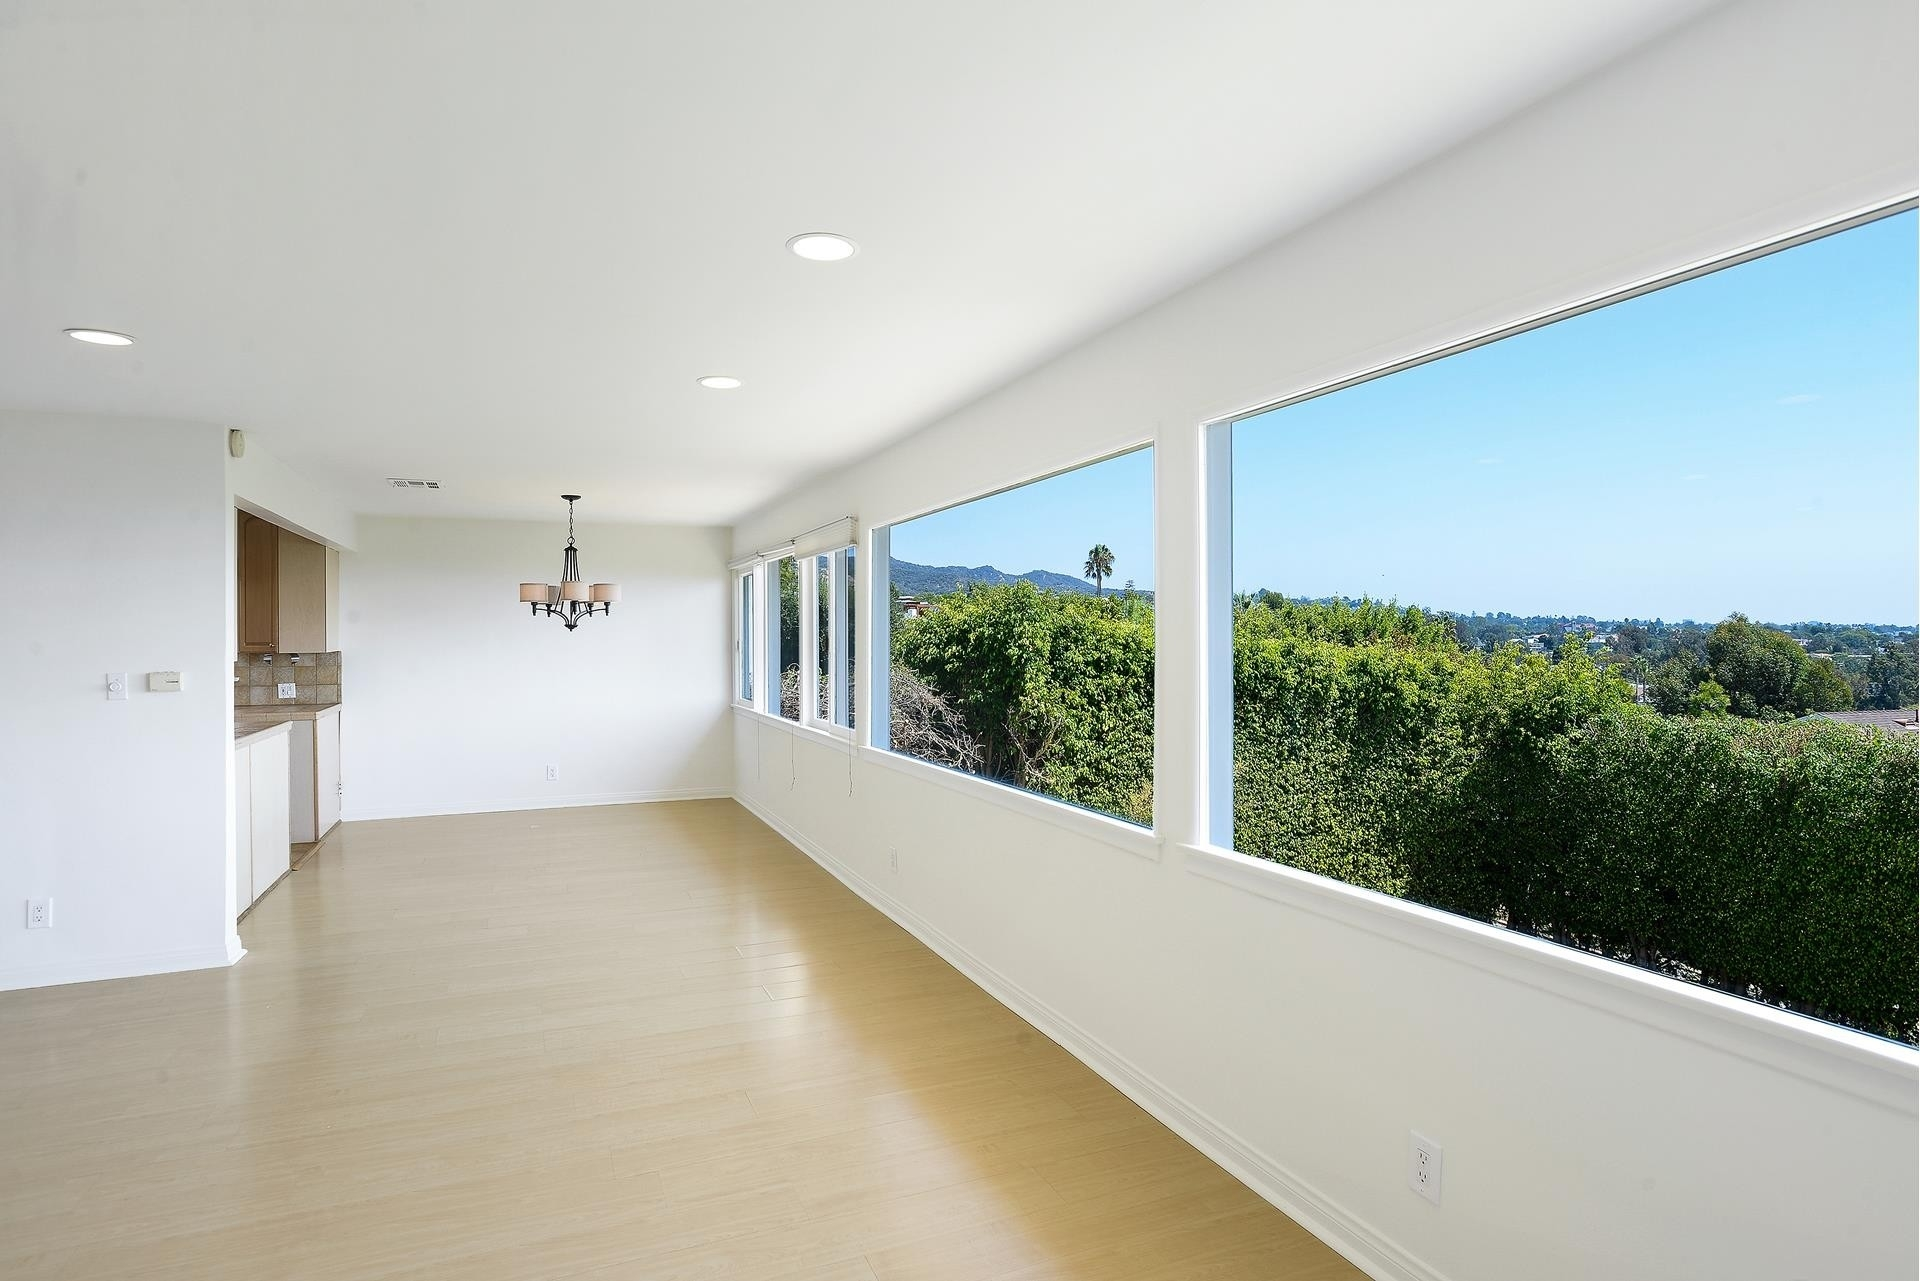 6. Rentals at Pacific Palisades